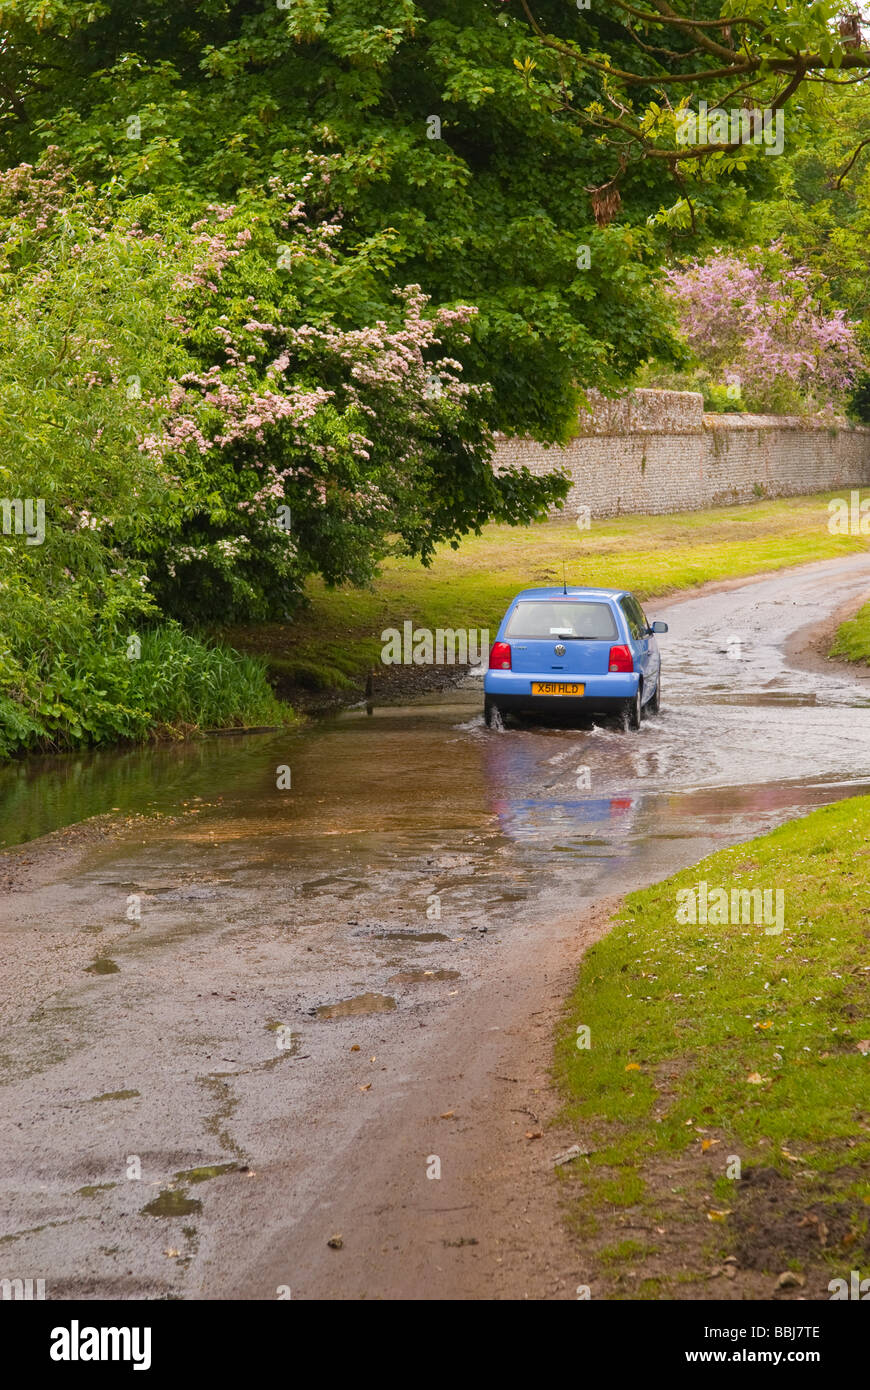 ford across road stock photos ford across road stock images alamy. Black Bedroom Furniture Sets. Home Design Ideas